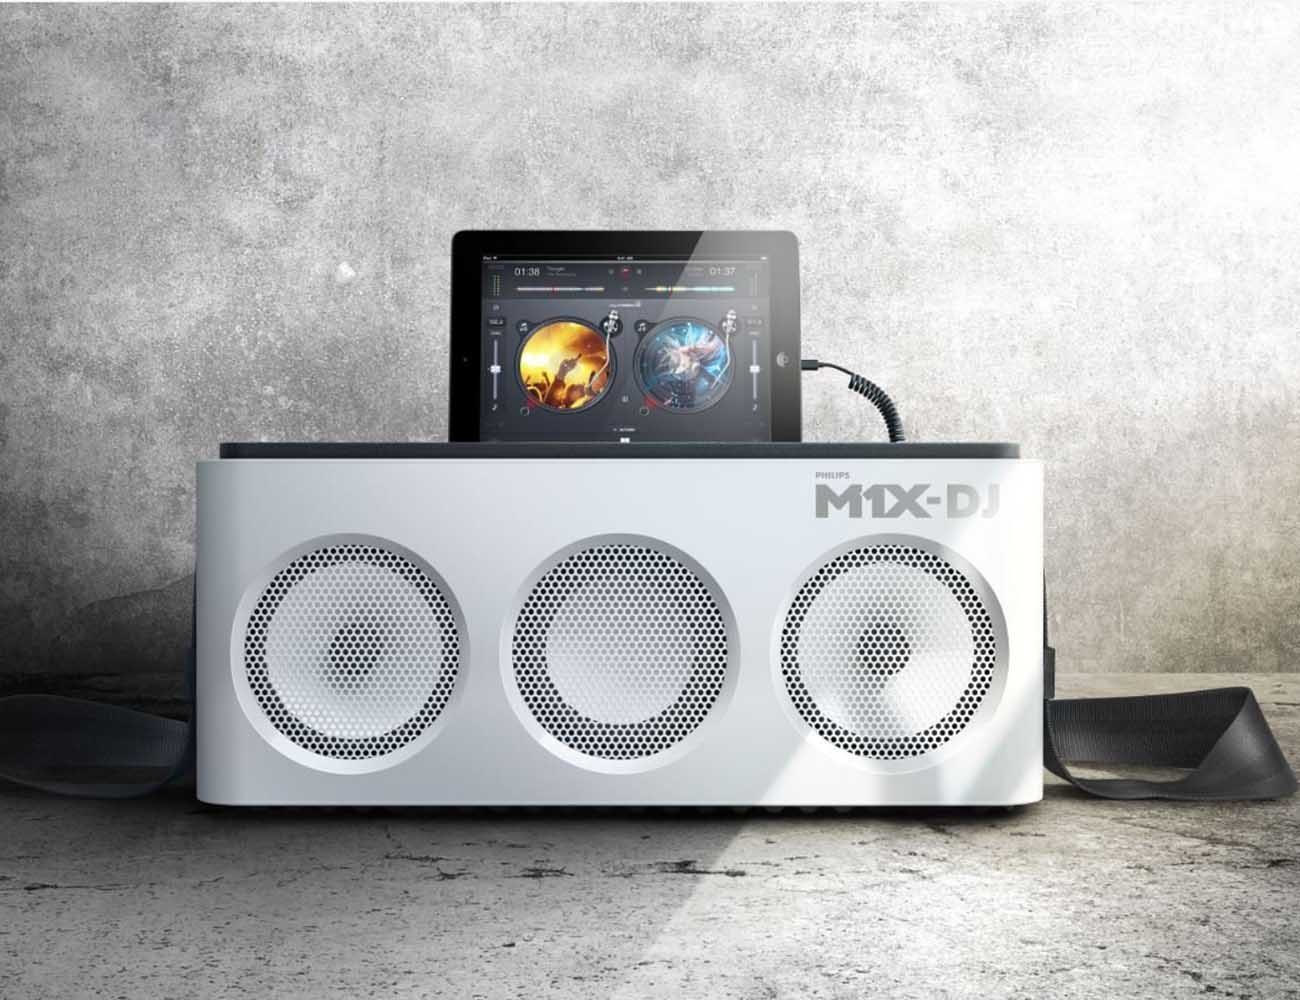 Philips+M1X-DJ+%E2%80%93+Portable+Sound+System+And+Docking+Station